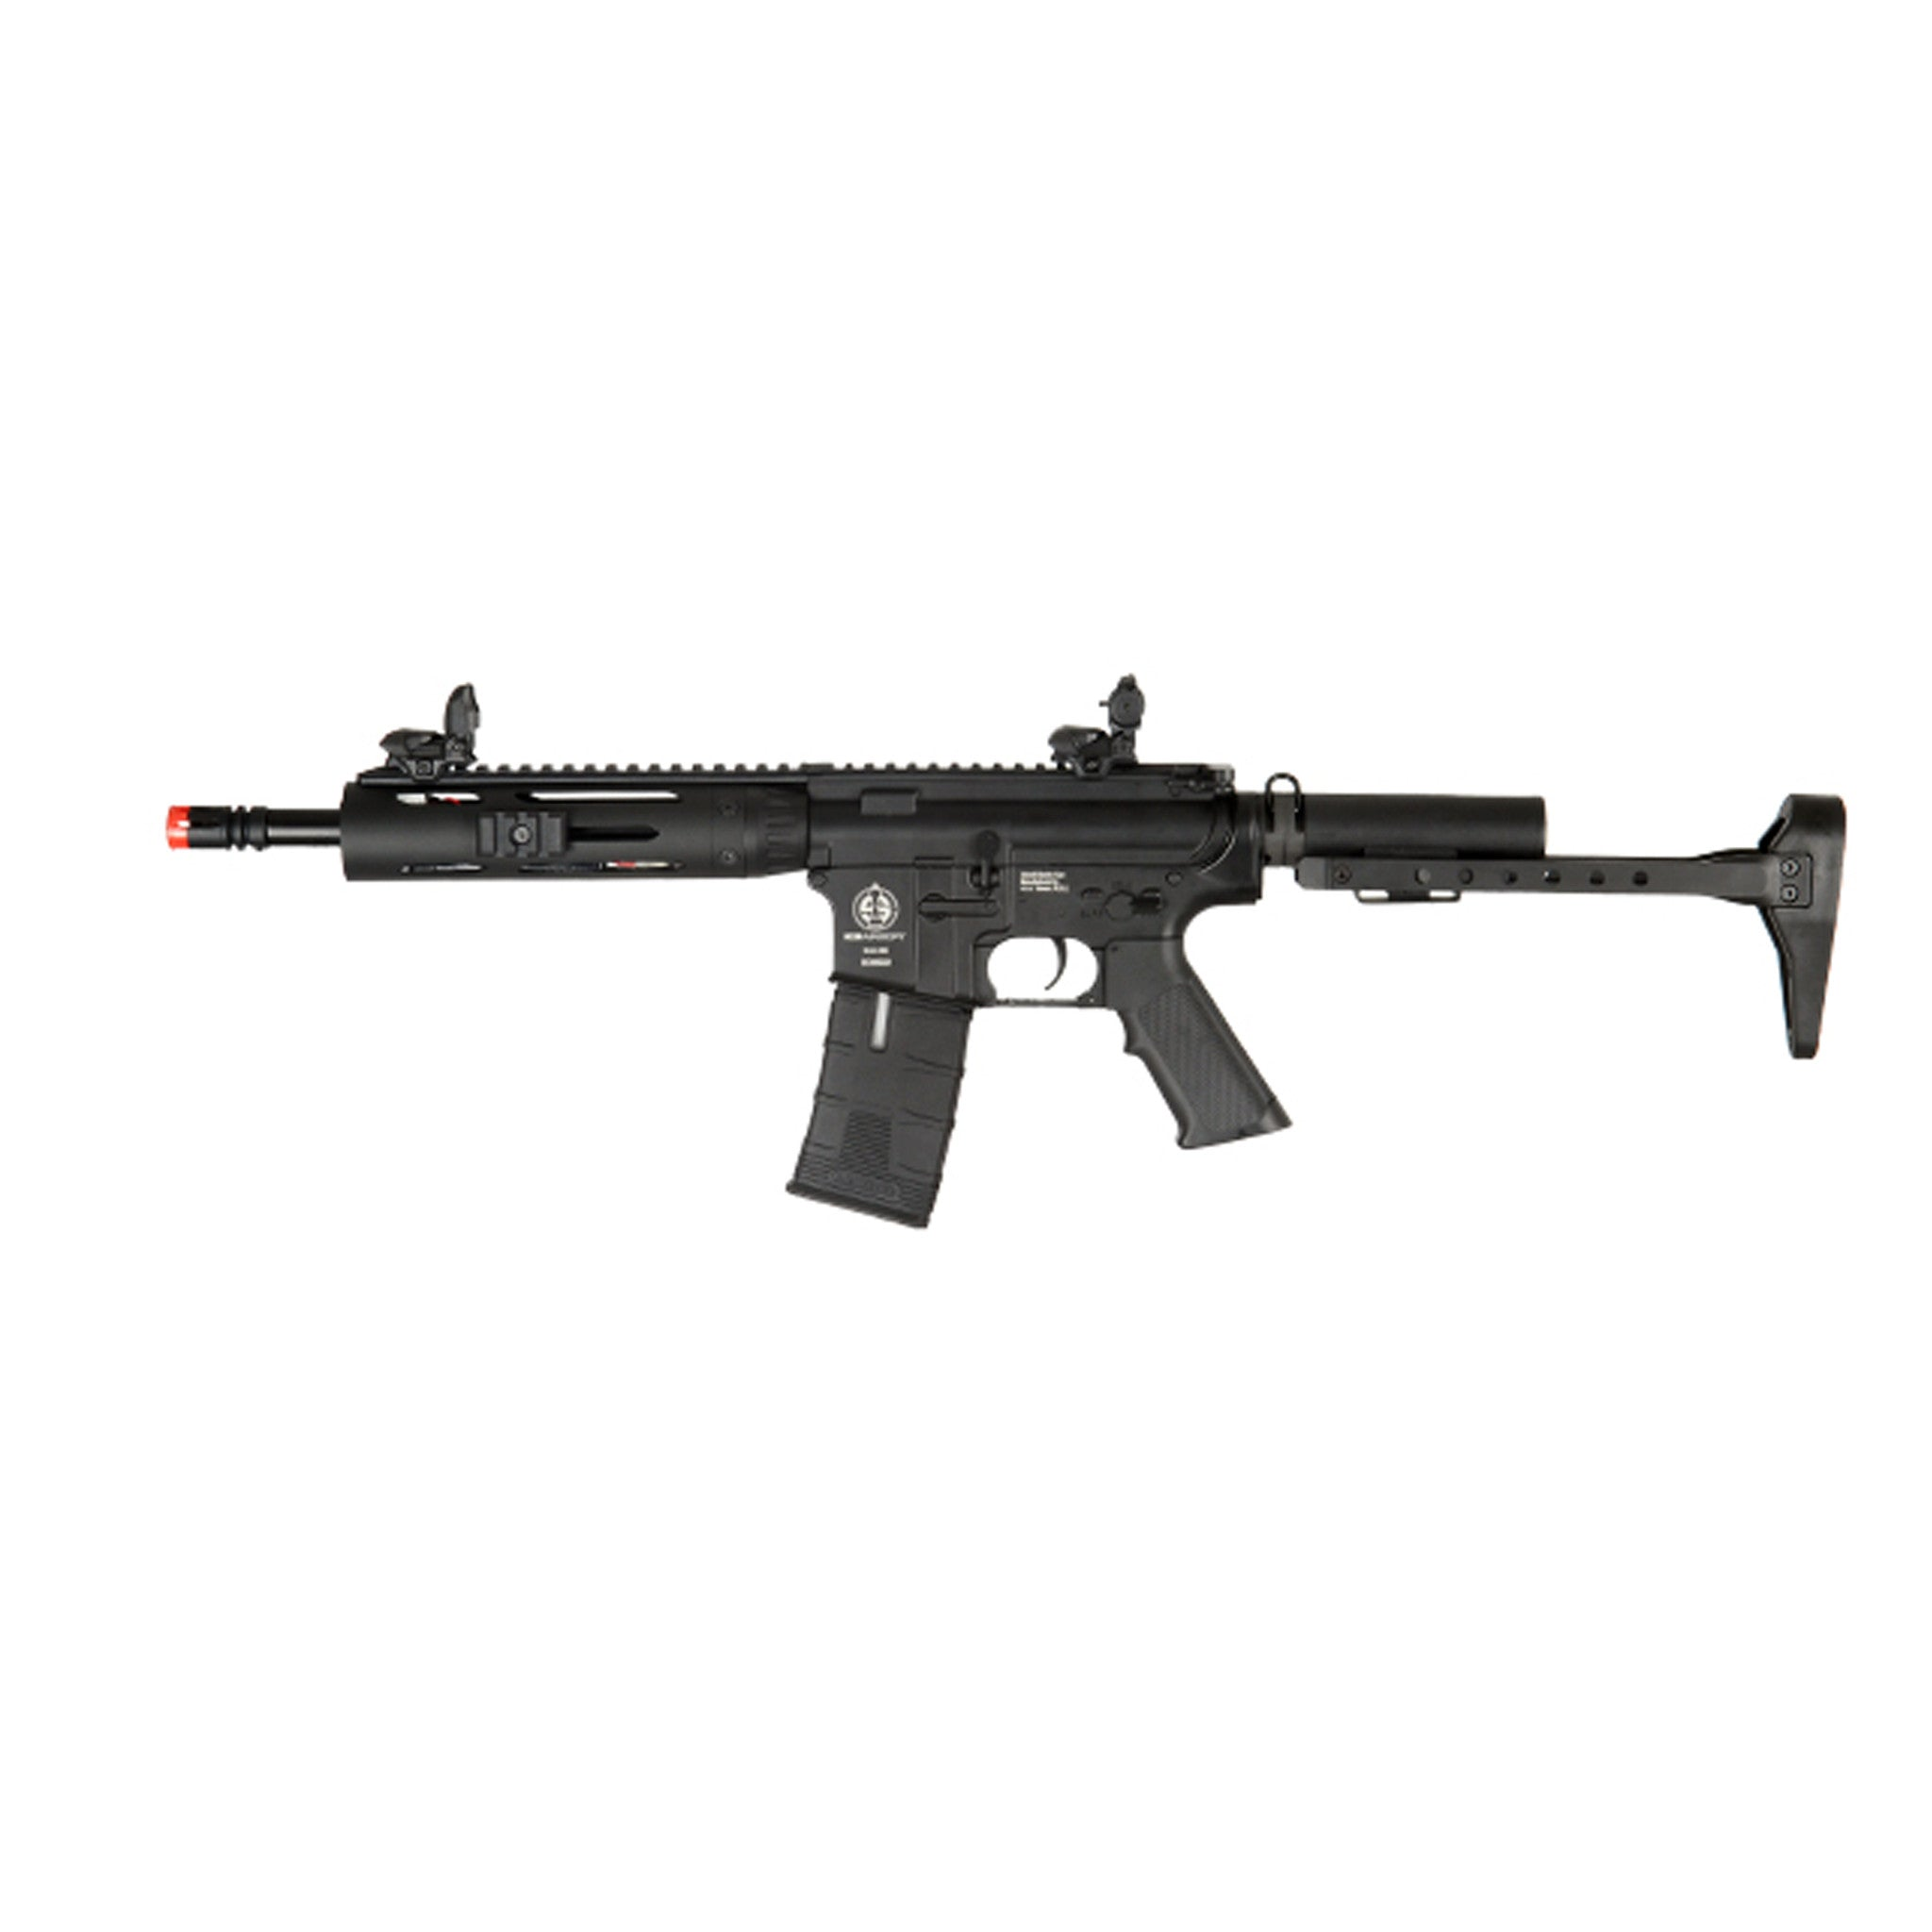 ICS CXP Tubular M4 - -Electric Automatic -Firing Modes: Semi-automatic and Full-automatic -Muzzle Velocity: 390-420 FPS -Magazine: 300-round high capacity (gear wind-up) -Gearbox: Full metal -Barrel: Full metal -Hop-up: Adjustable -Receiver: Full Metal